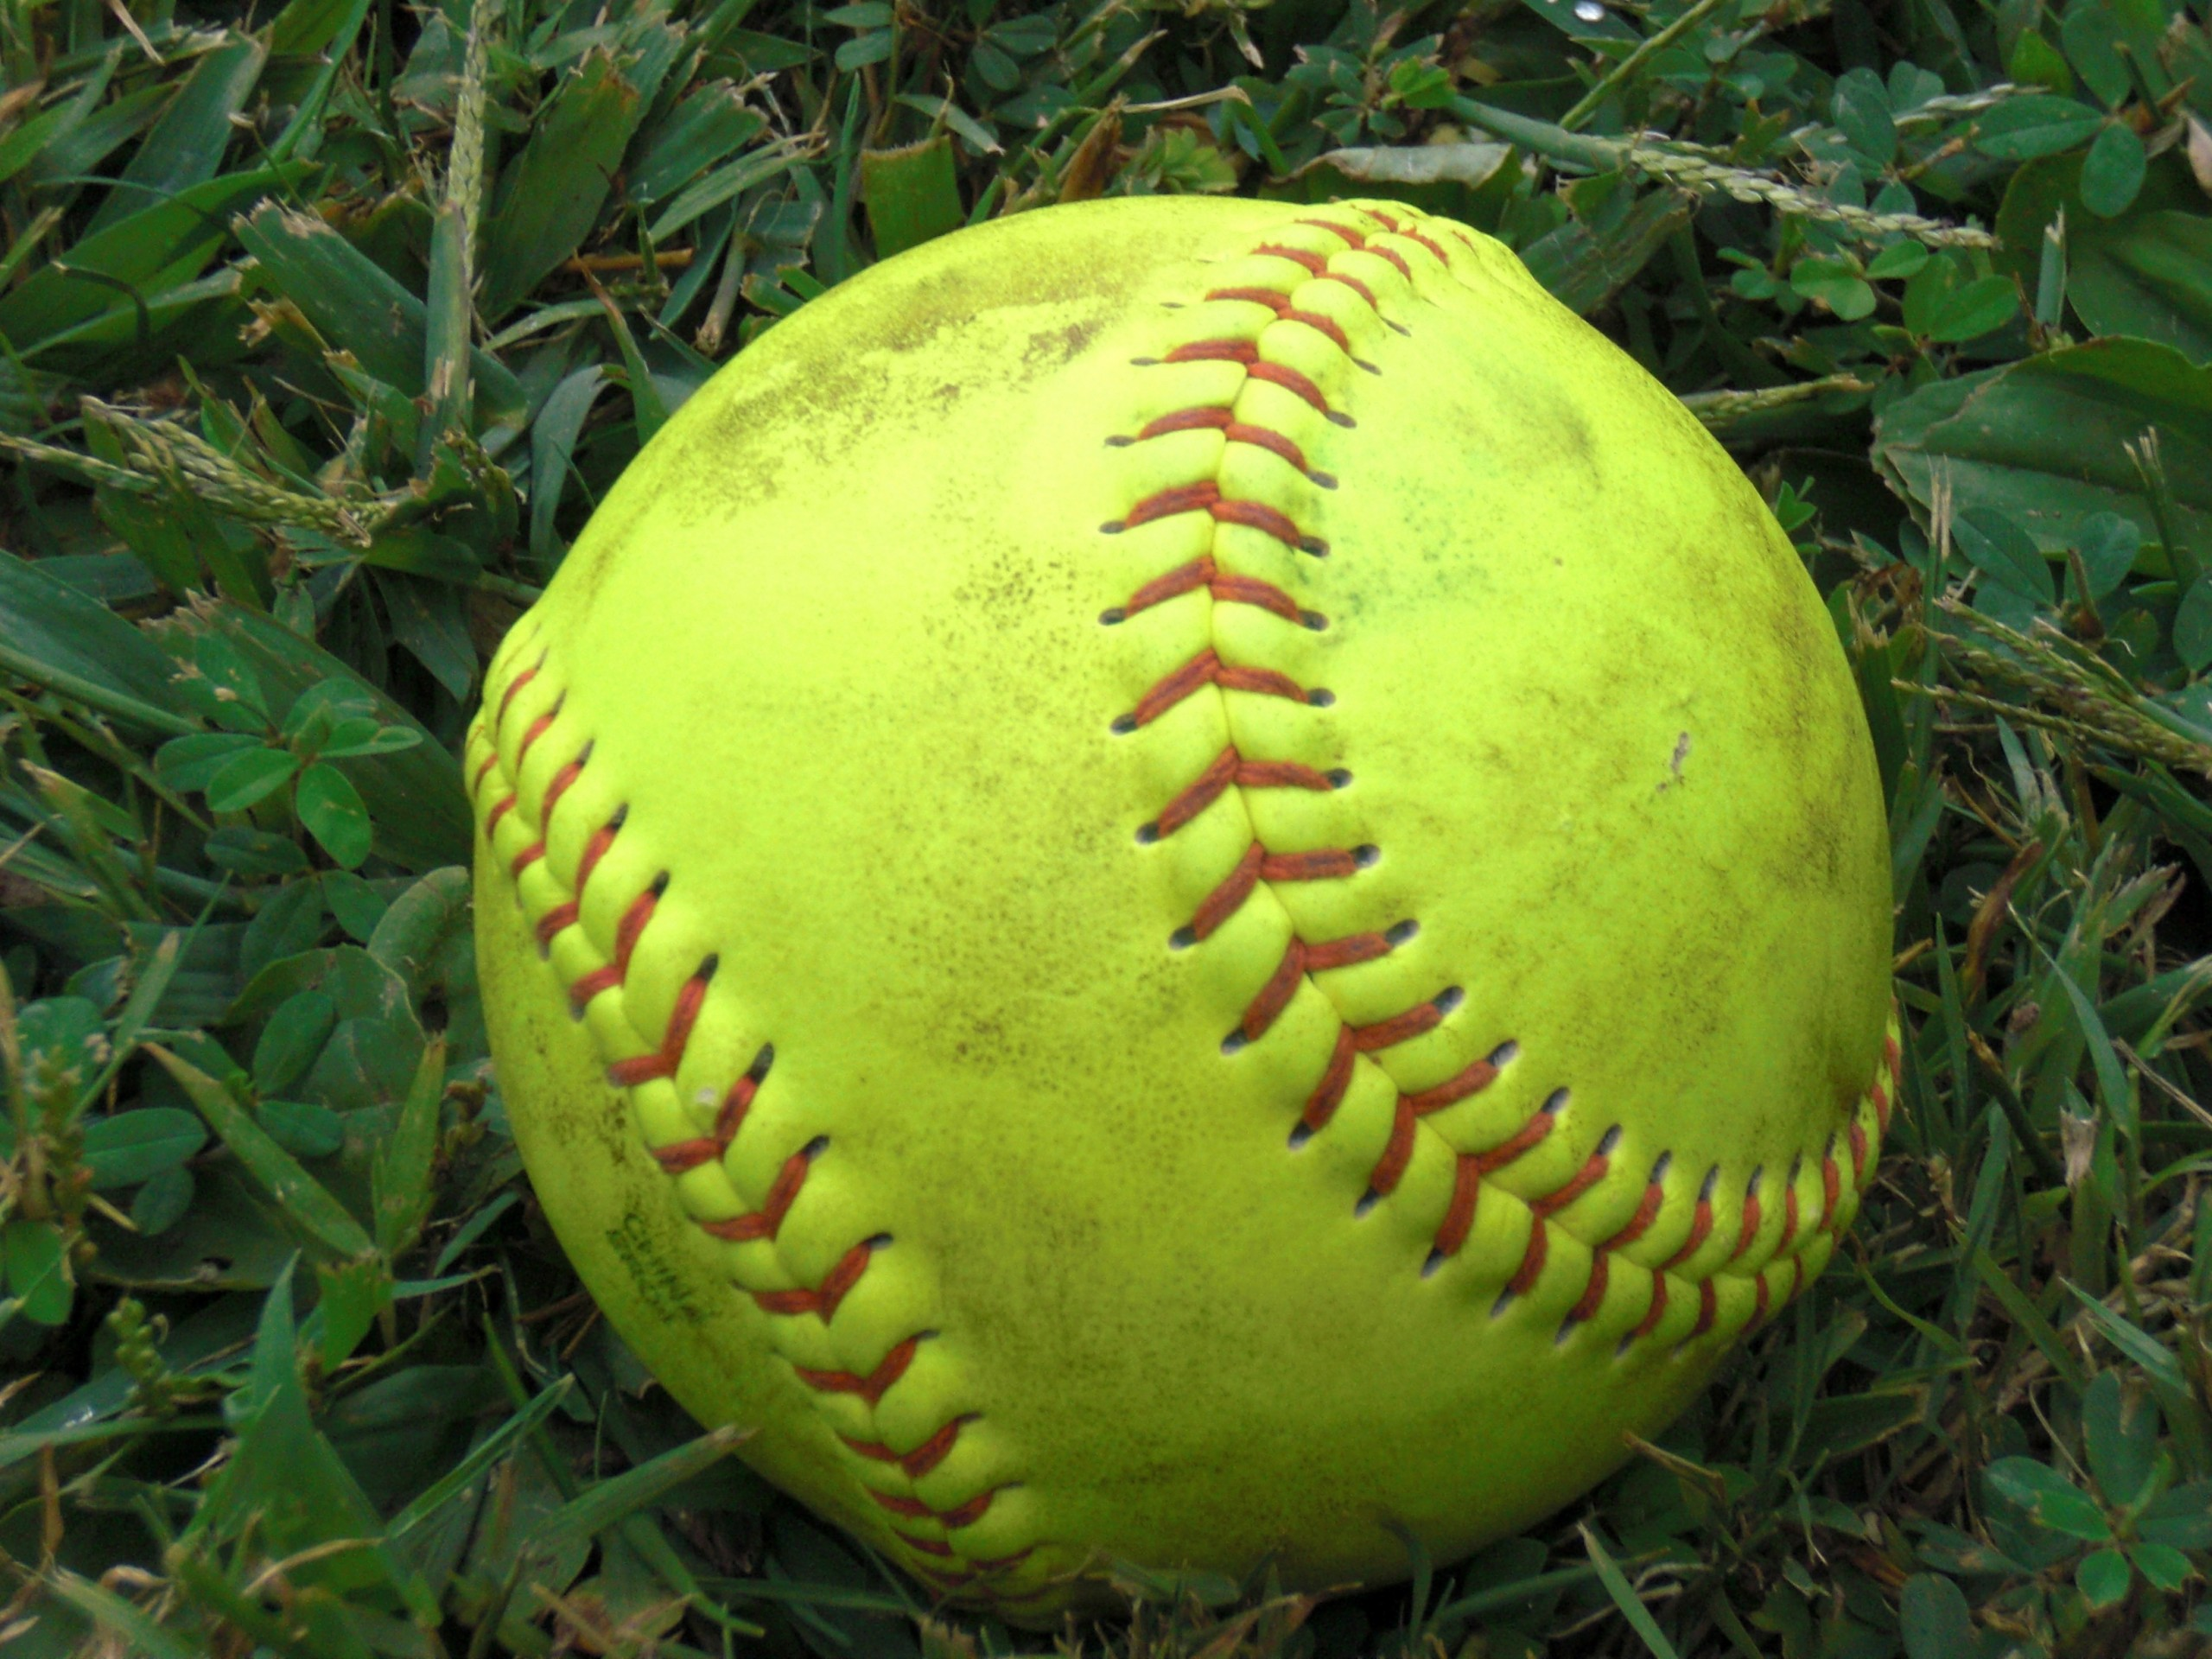 No Hitter Thrown in CHBC vs. Mulberry Grove Game